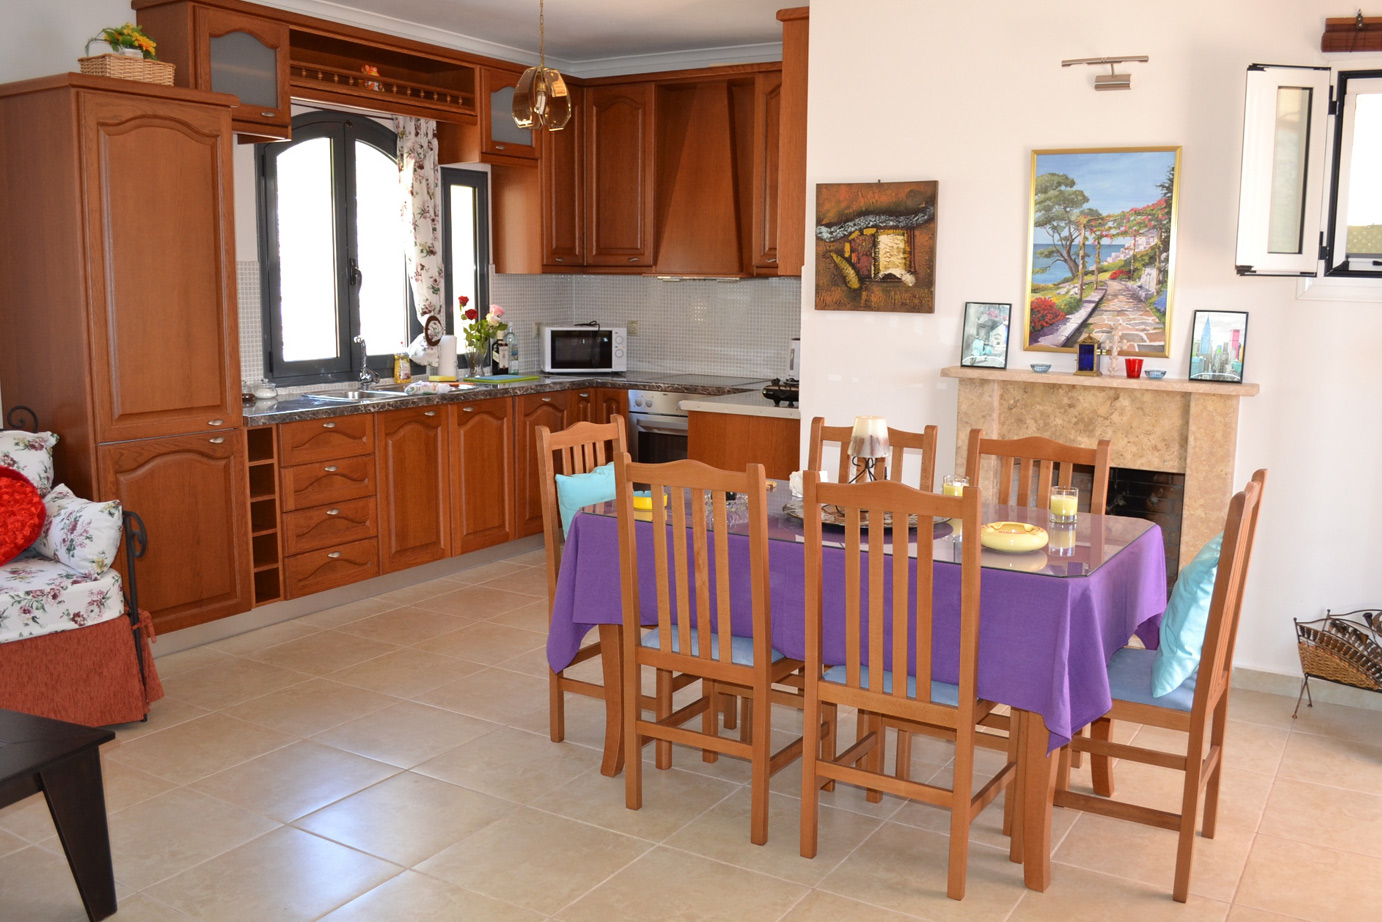 Kefalonia Apartments - Kefalonia Apartments Agia Efimia Kefalonia - Accommodation Kefalonia - Apartments Agia Efimia Kefalonia - Luxury Apartments Kefalonia - Sea View Apartments Kefalonia - Agia Efimia Apartments - Villas Agia Efimia Kefalonia